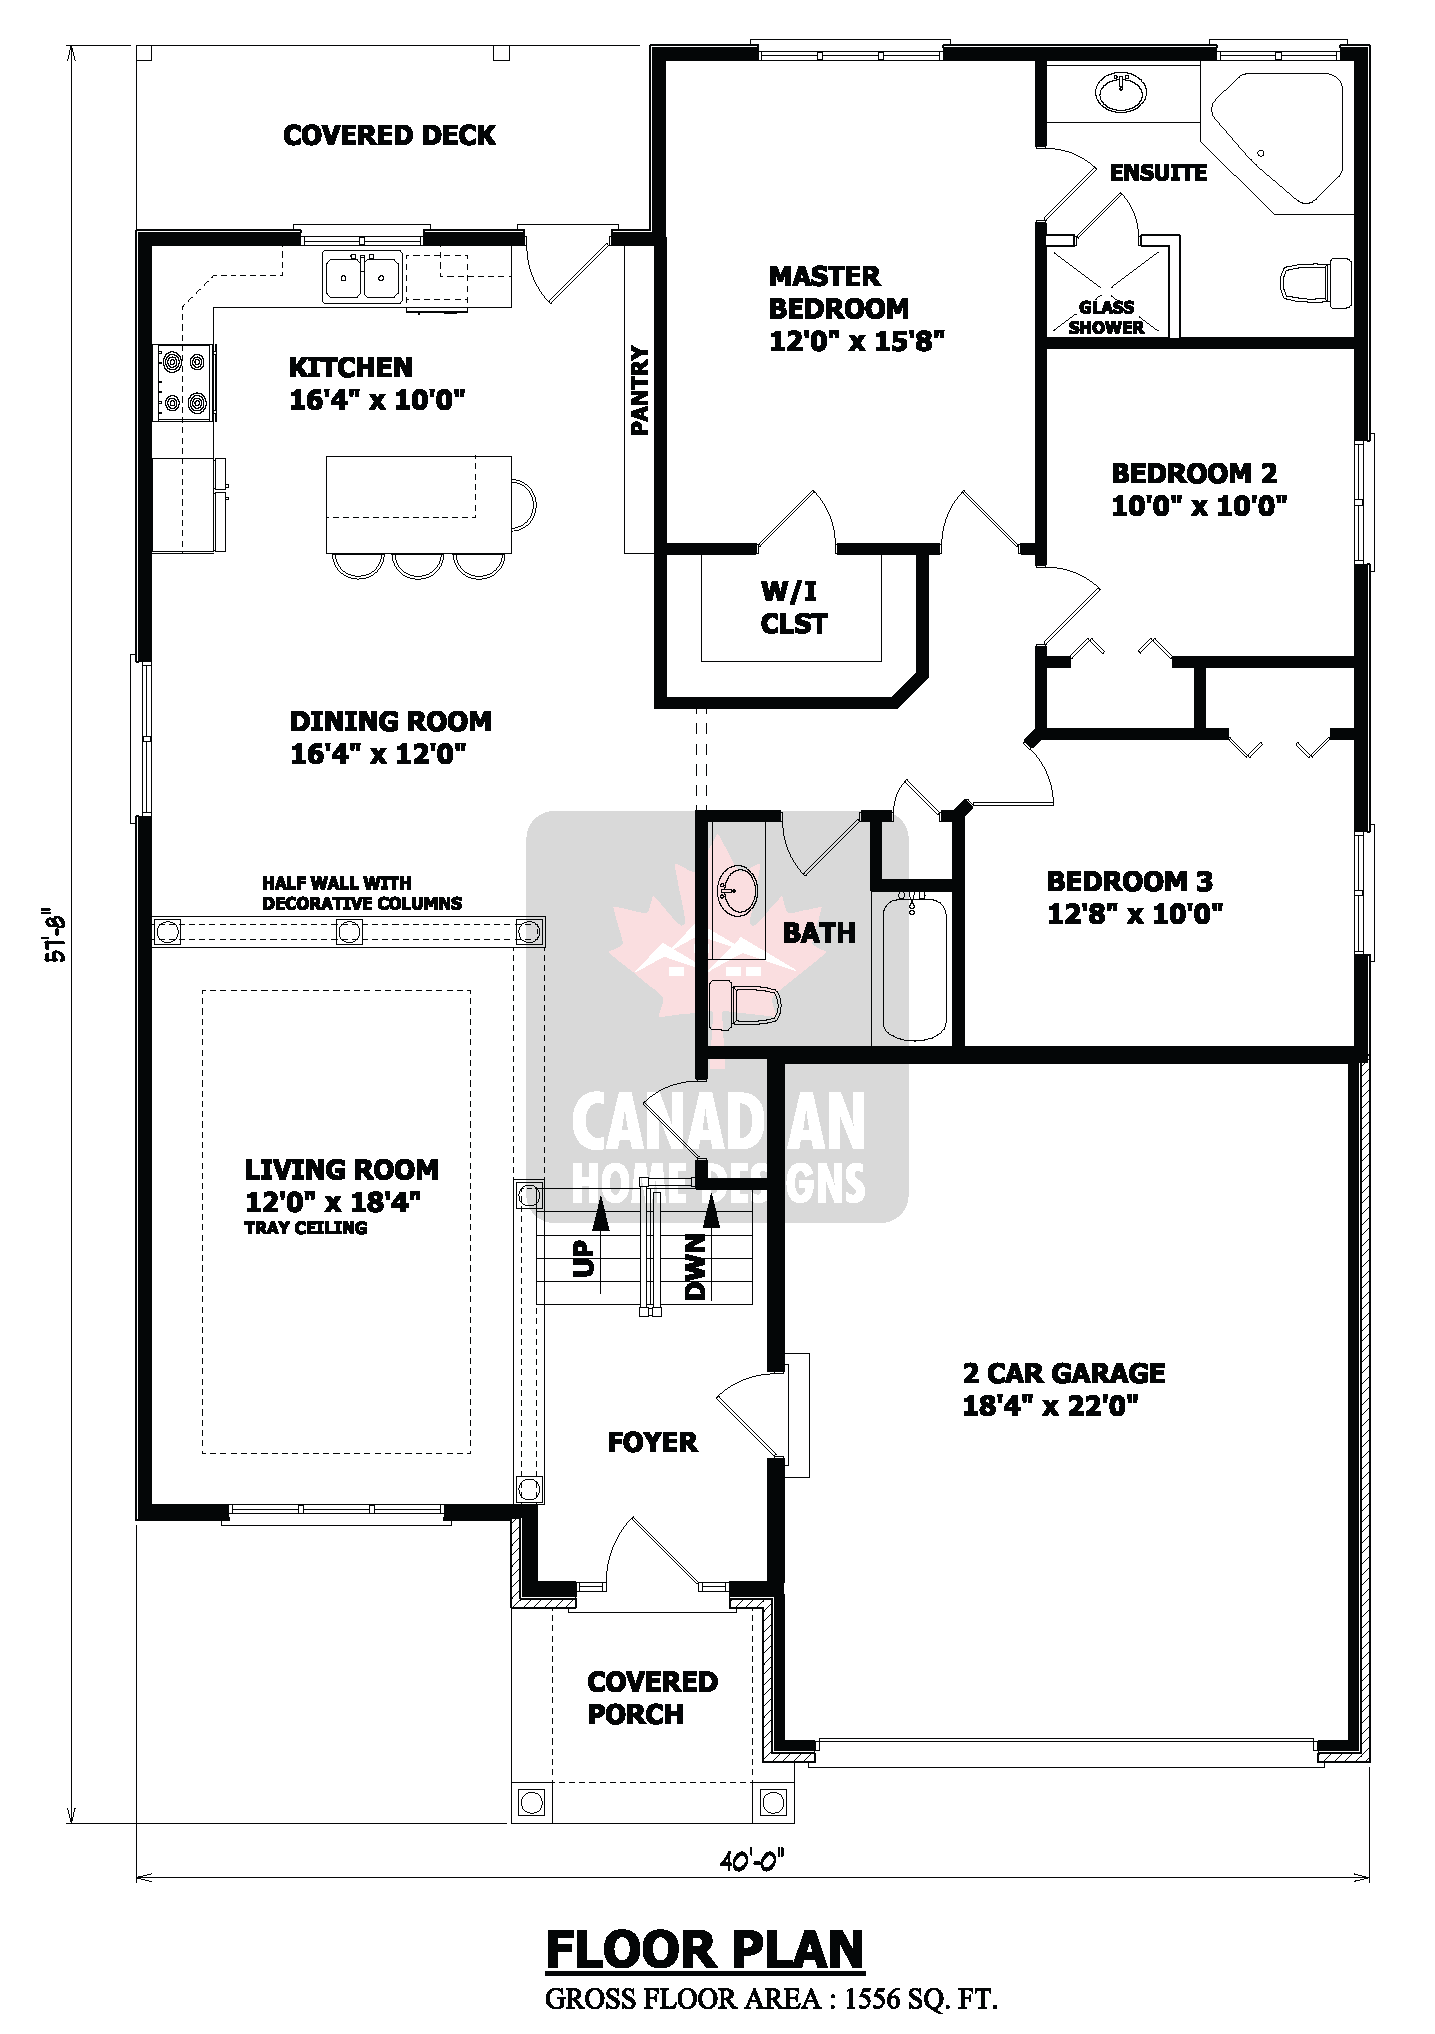 Marvelous Tiny House Floor Plans At Dwg Pinterest Small Homes Largest Home Design Picture Inspirations Pitcheantrous